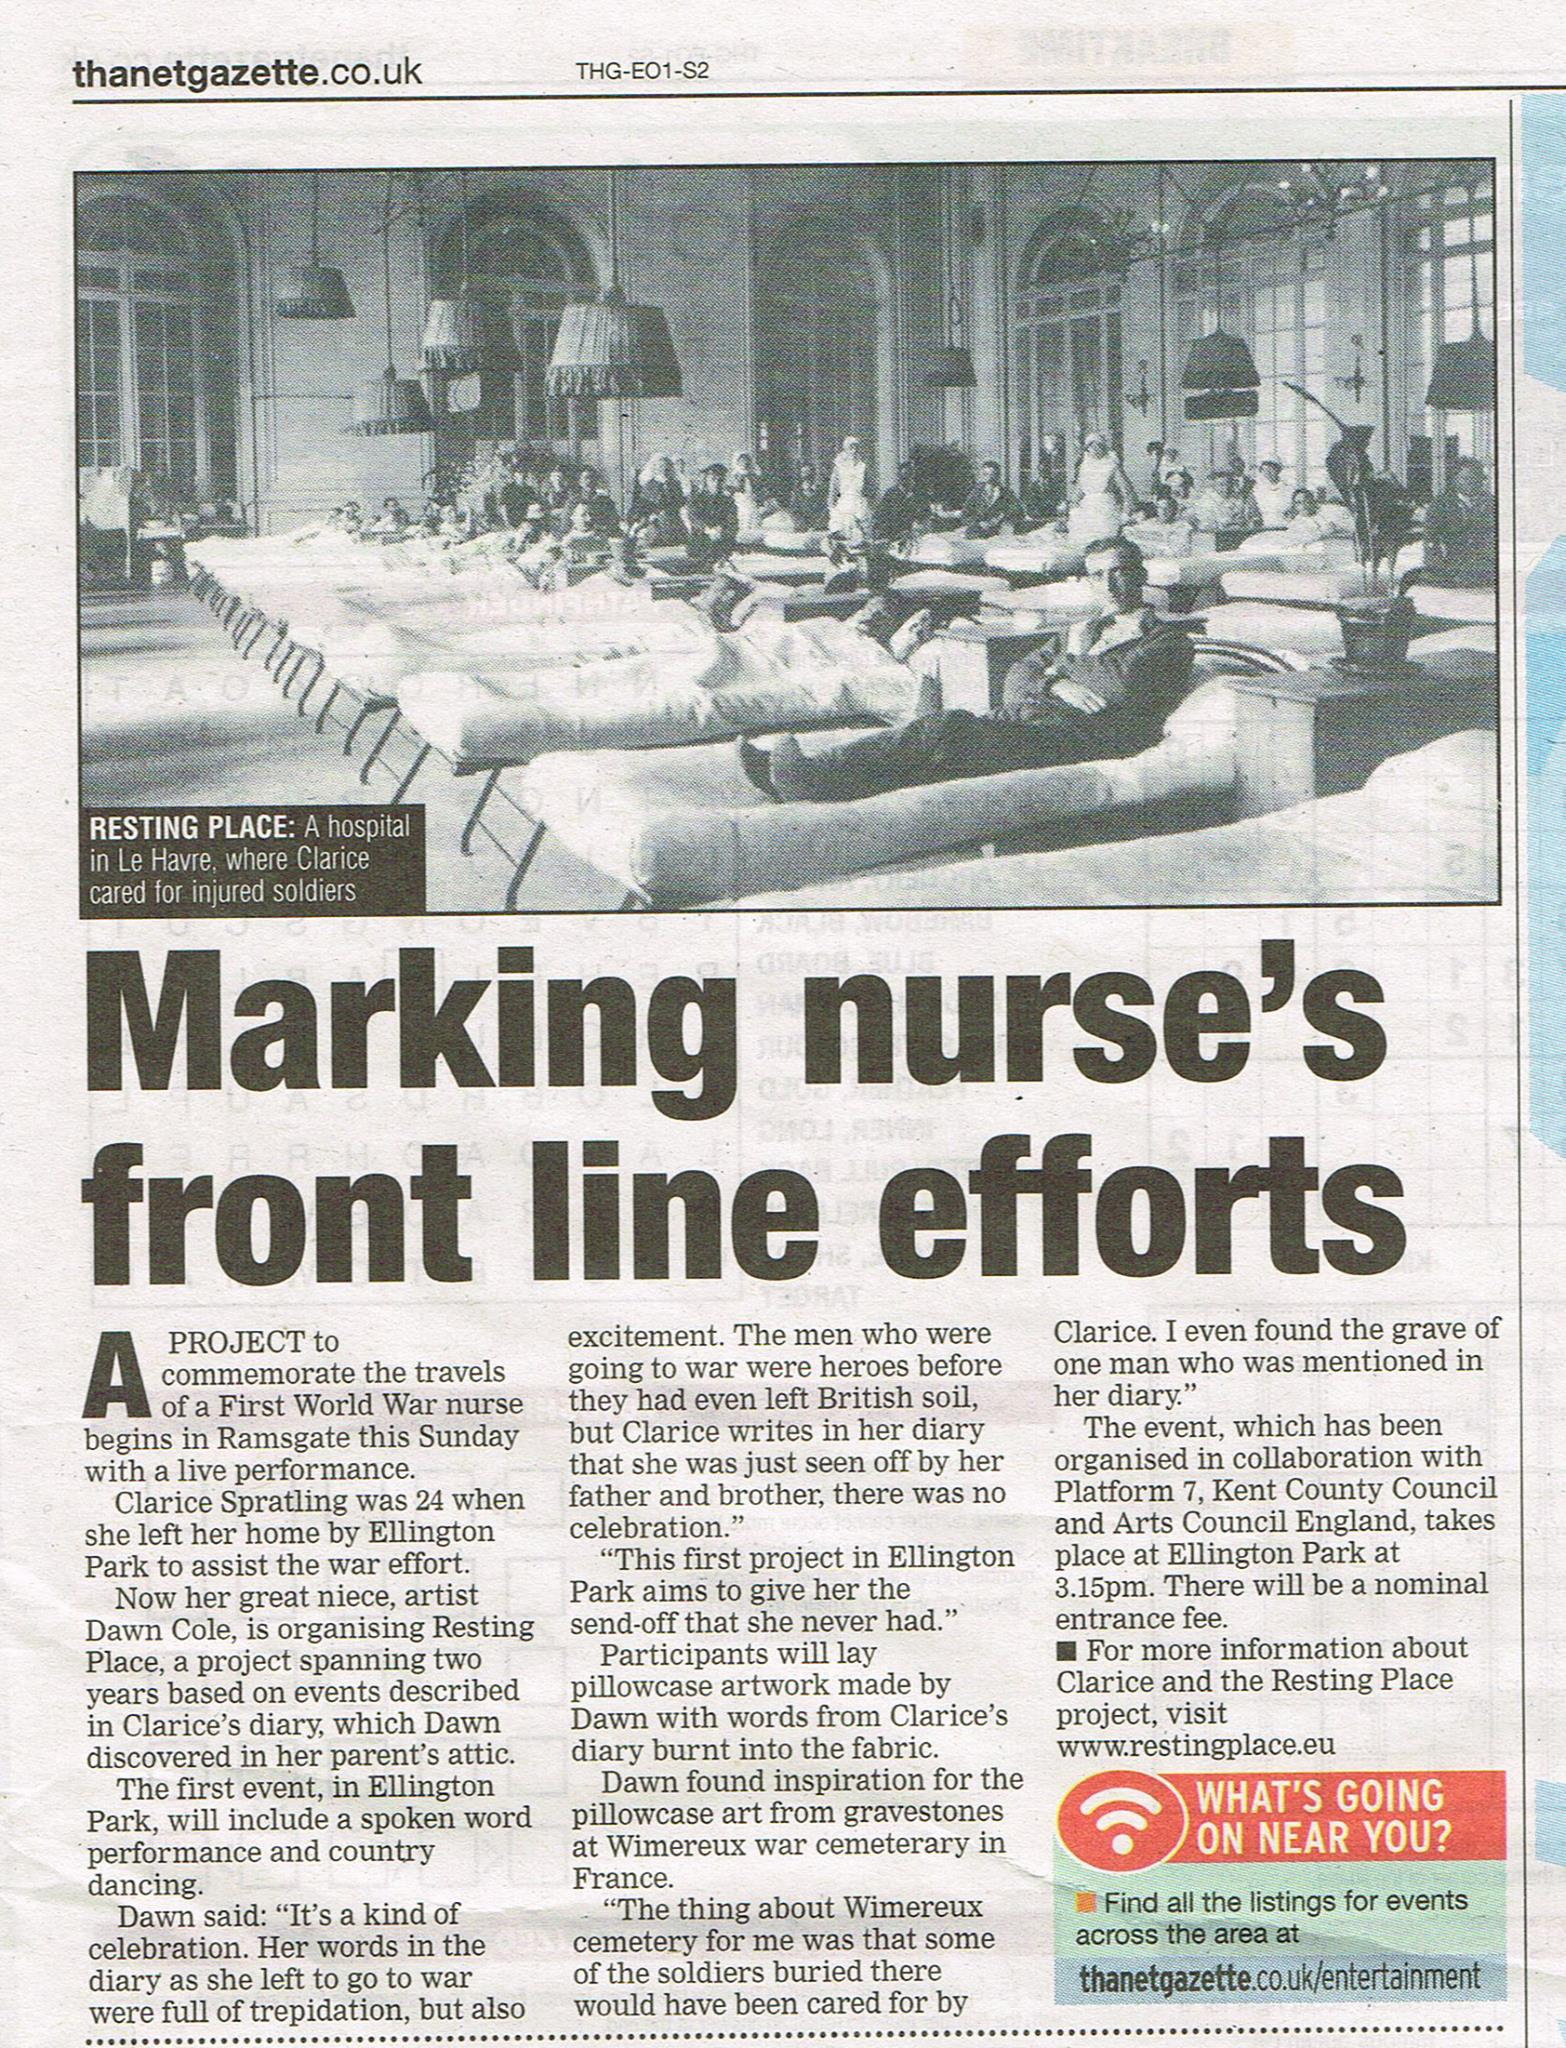 Thanet Gazette article 21Mar14 Ellington Park